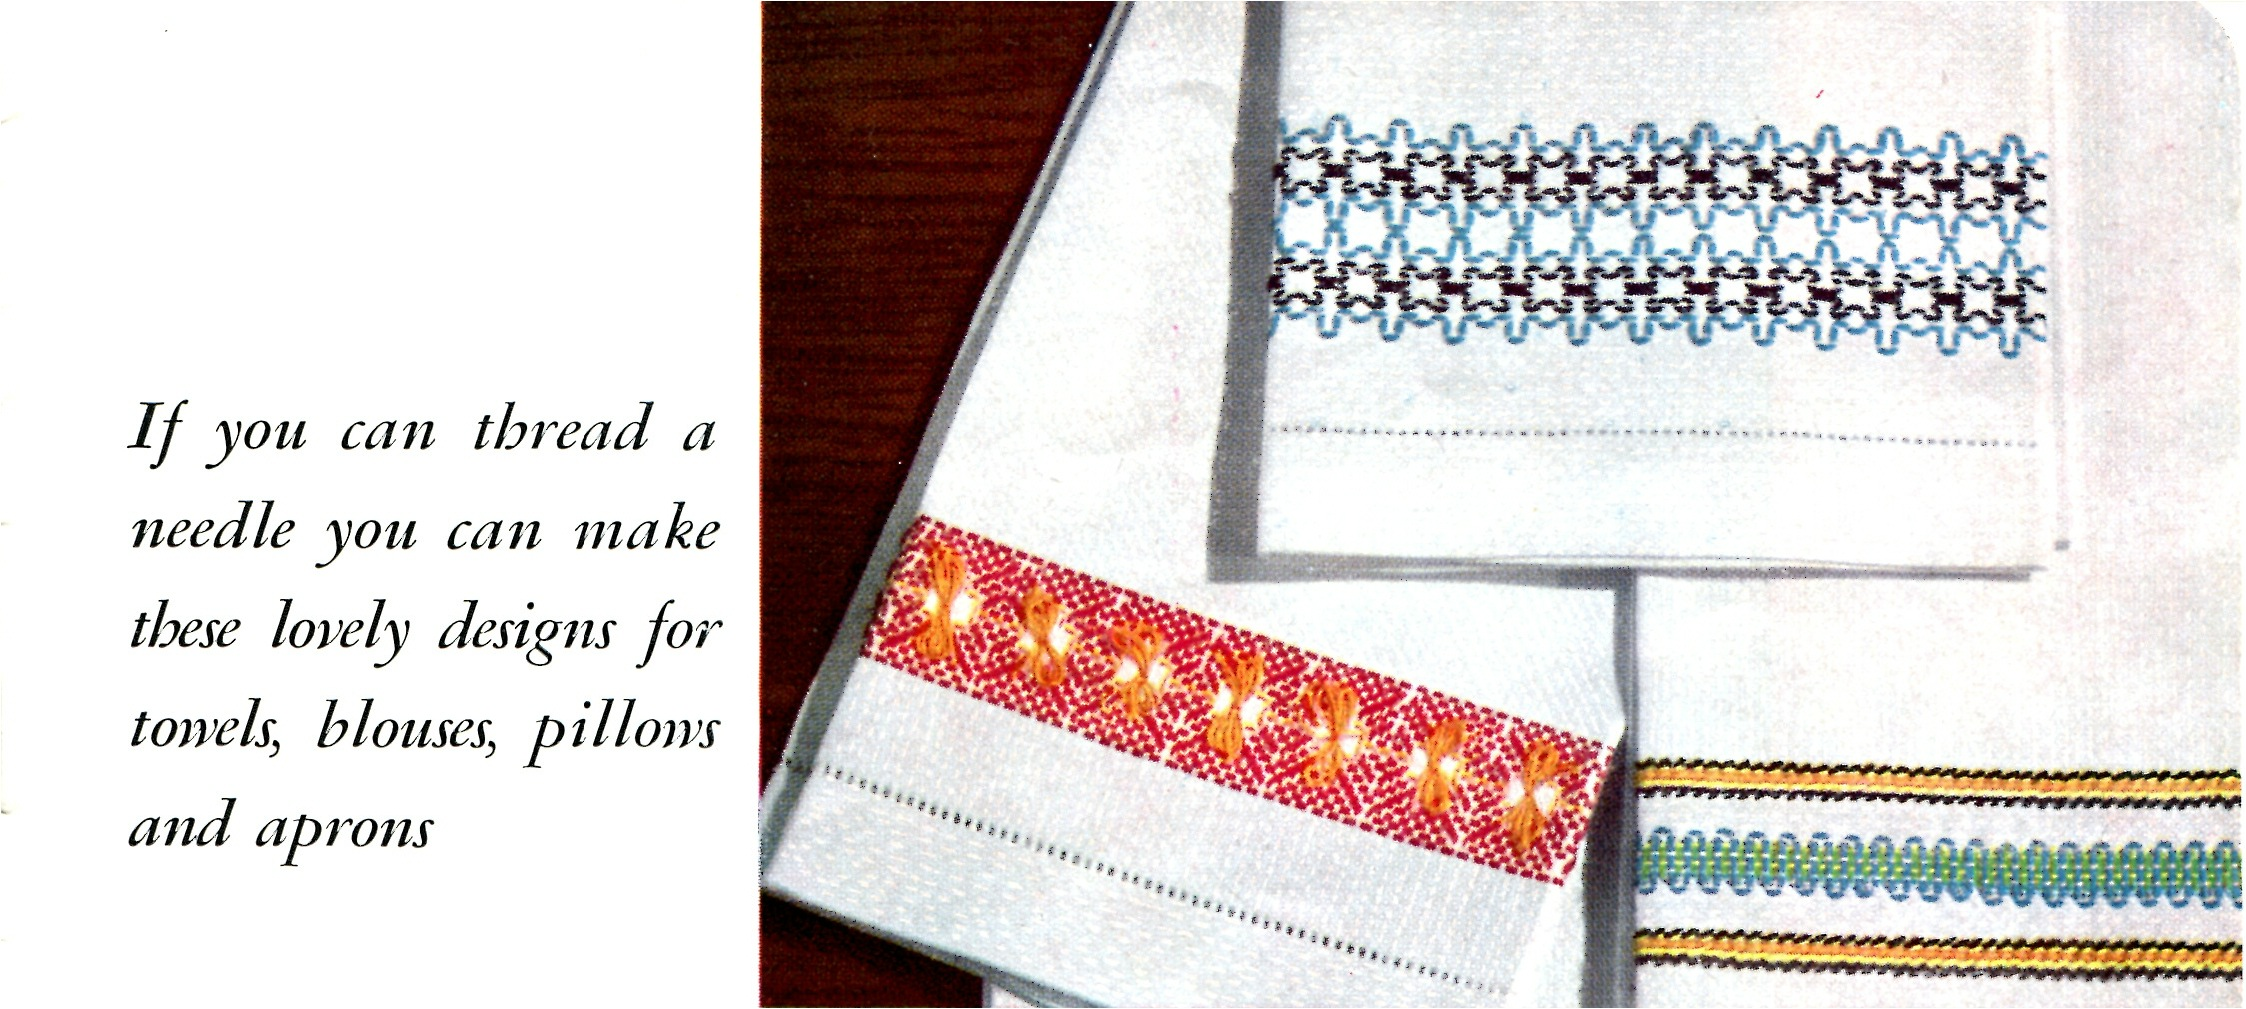 Swedish Embroidery Huck Weaving Instructions And Free Design